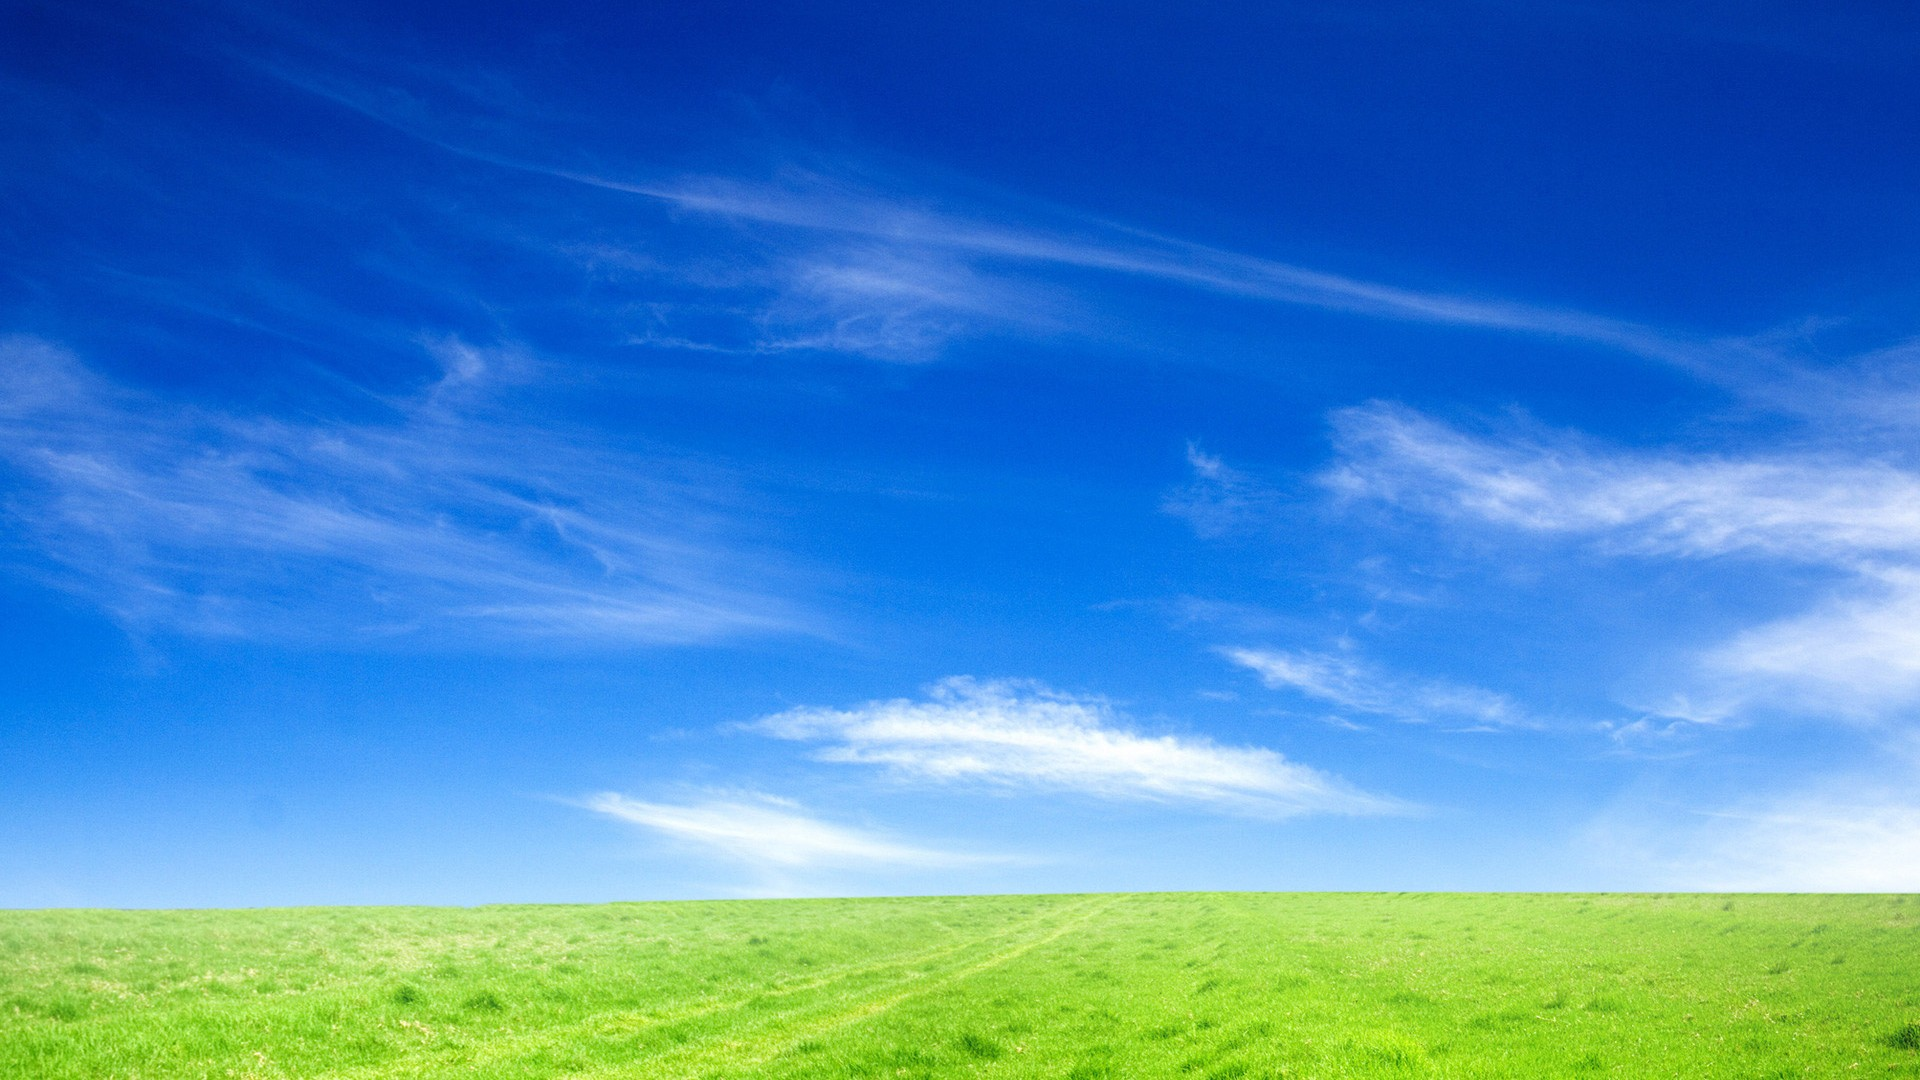 3d Wallpaper For Ipad 4 Blue Sky And Green Grass Wallpapers Hd Wallpapers Id